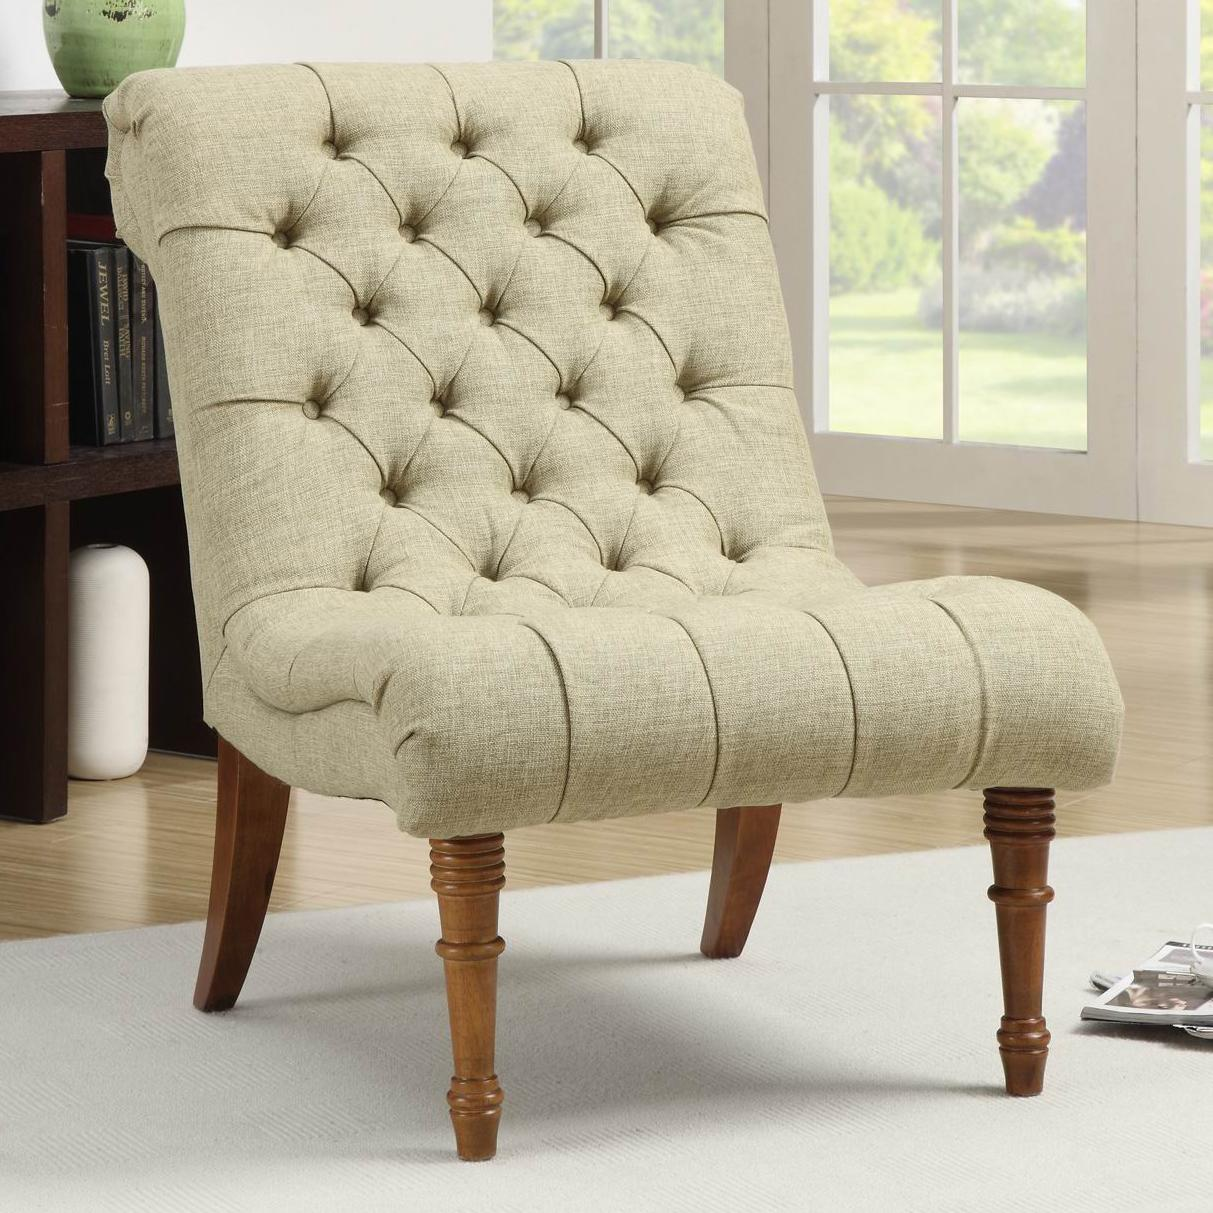 Coaster Accent Chair Accent Seating Tufted Accent Chair Without Arms By Coaster At Value City Furniture